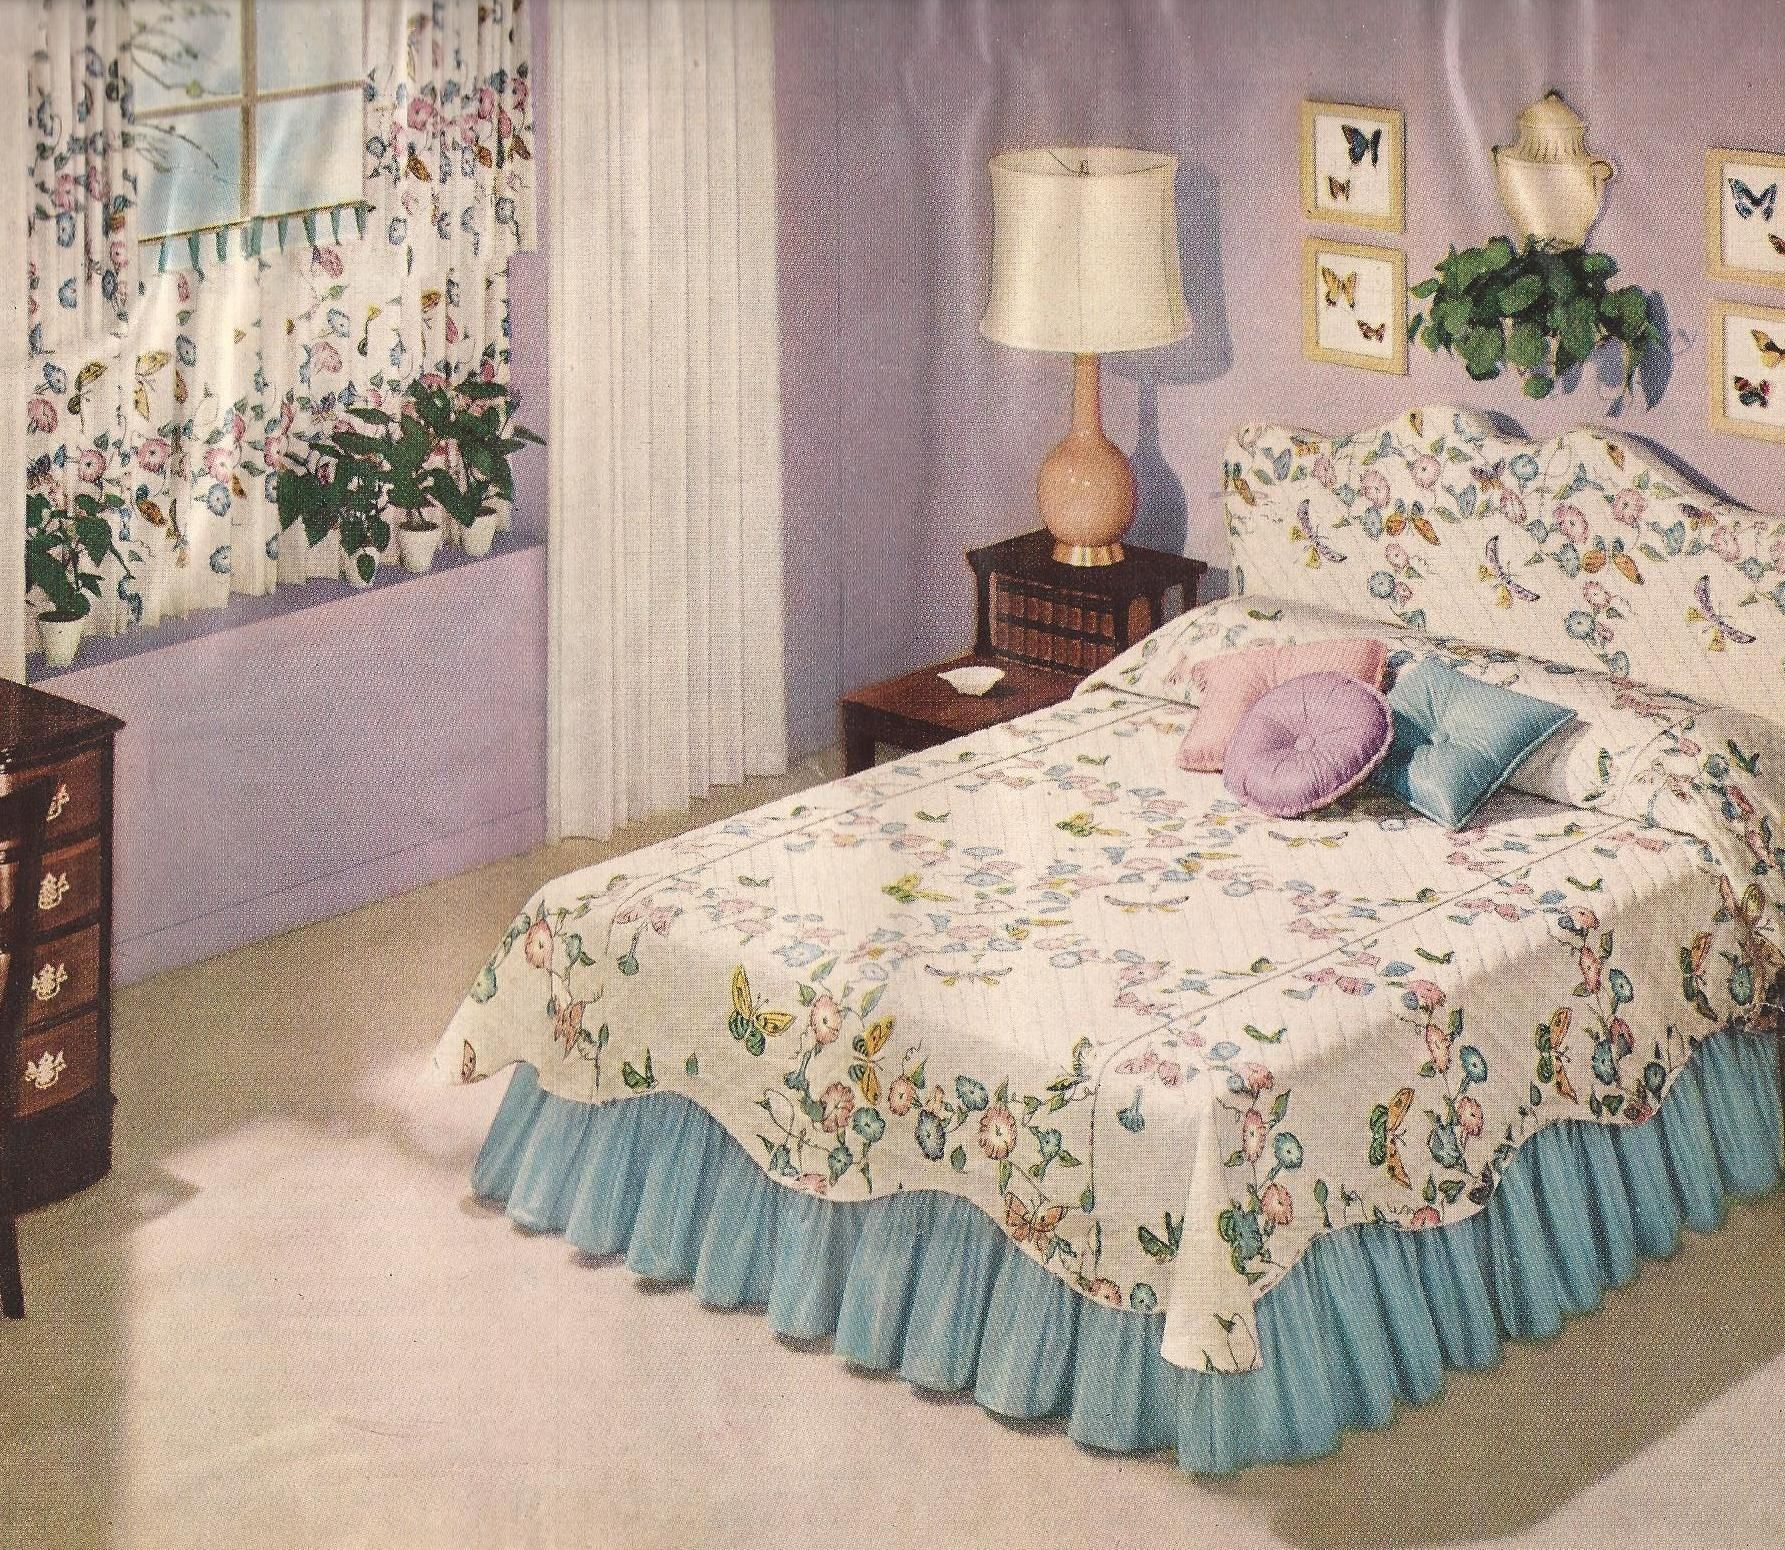 Bedroom Ideas For Teenage Girls 2012 1950's bedroom decor |  bedrooms · posted on june 27, 2012